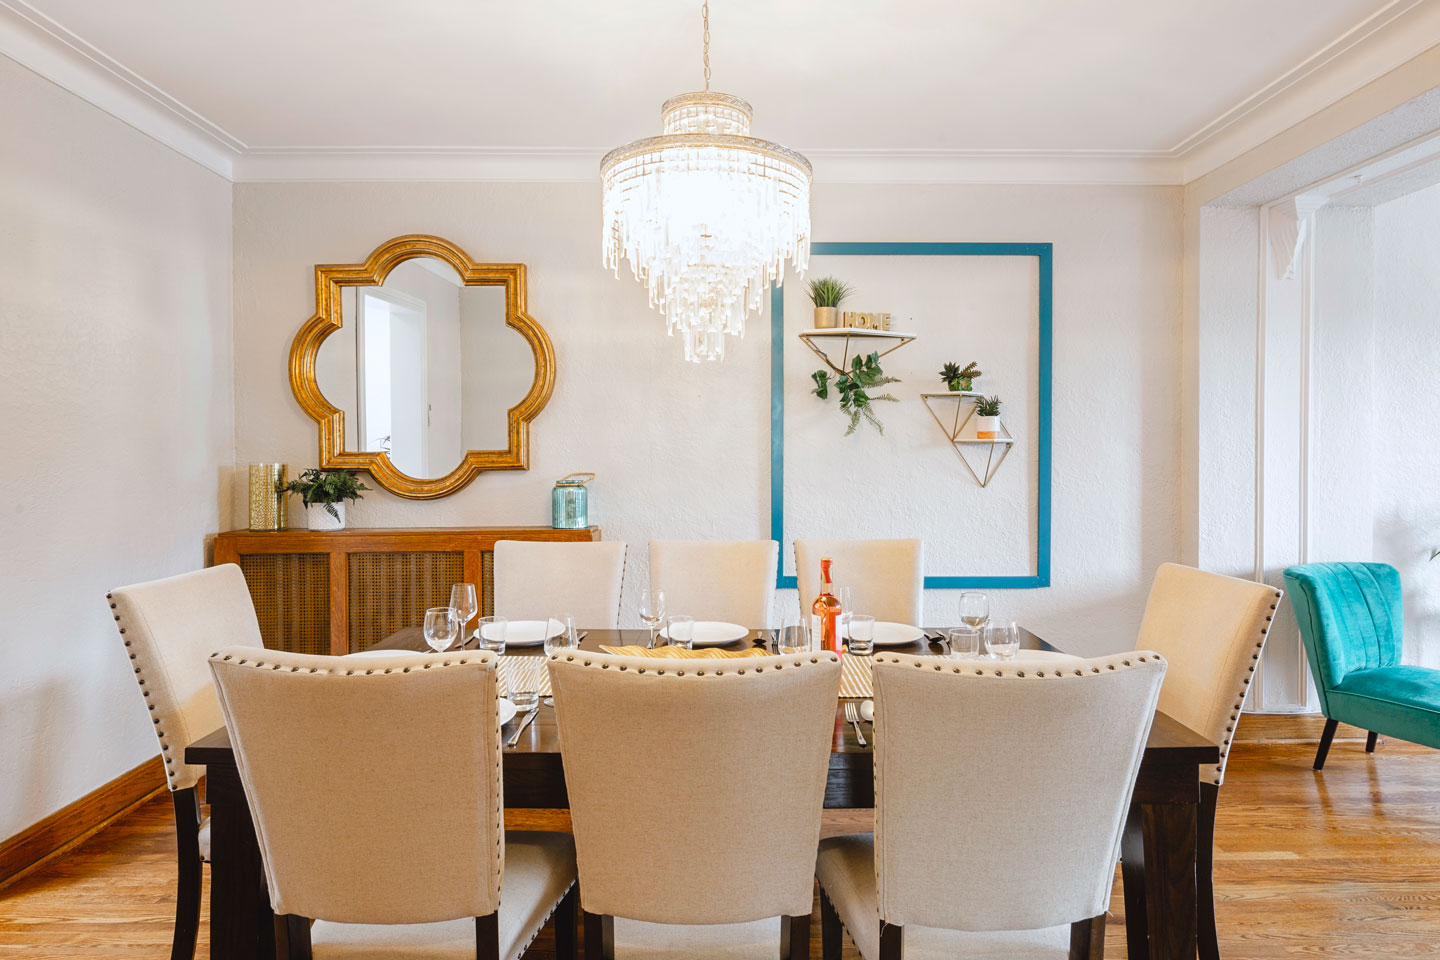 Golden kiss: lovely dining area with gold and turquoise decor